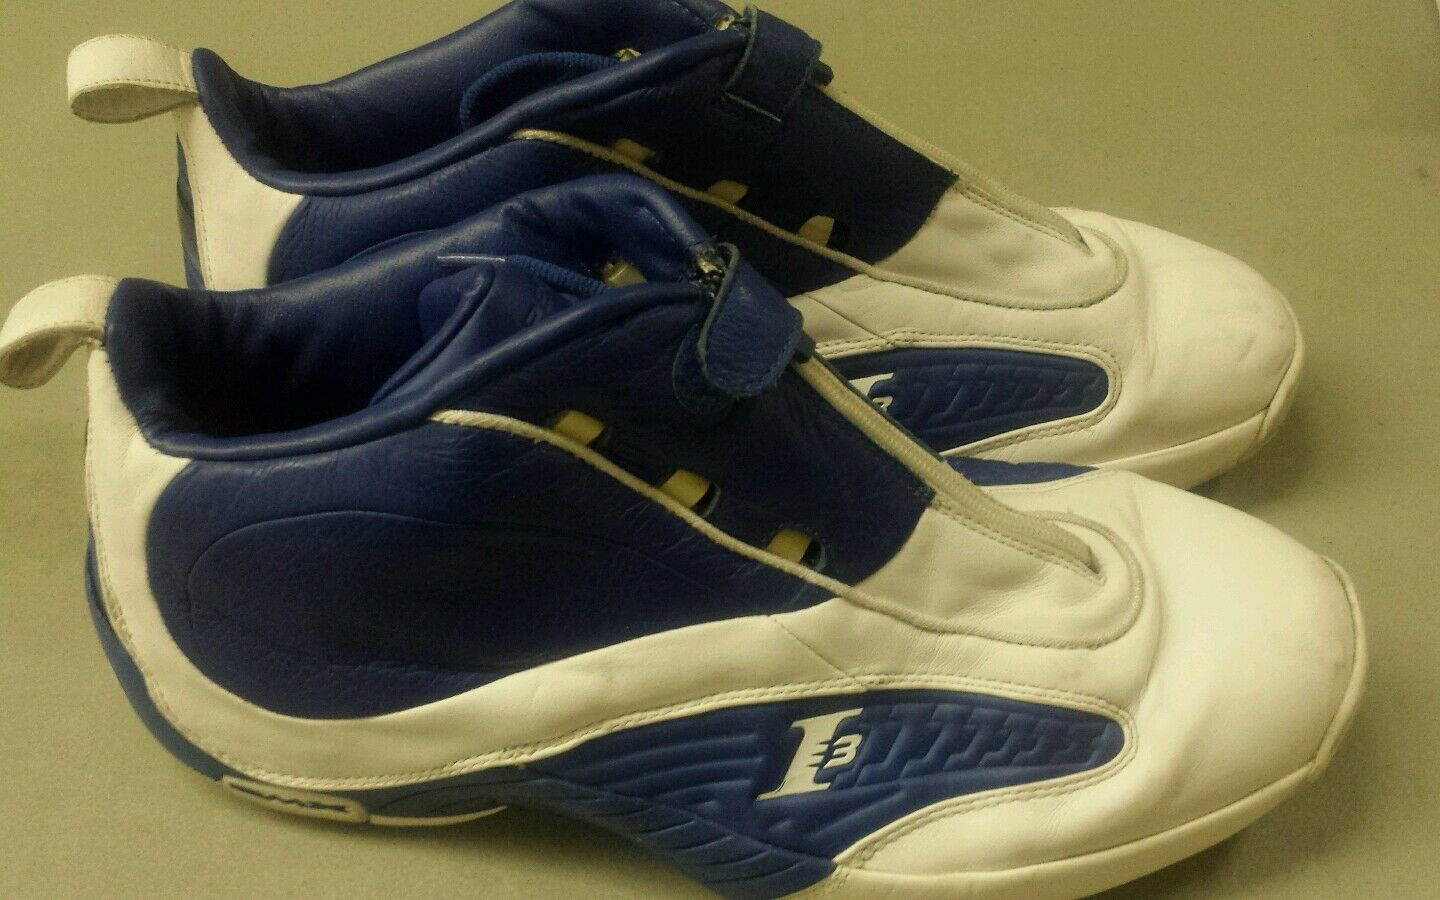 Uomo Reebok Allen Iverson I3 Basketball Athletic Athletic Athletic scarpe Dimensione 15 blu bianca 8921d3